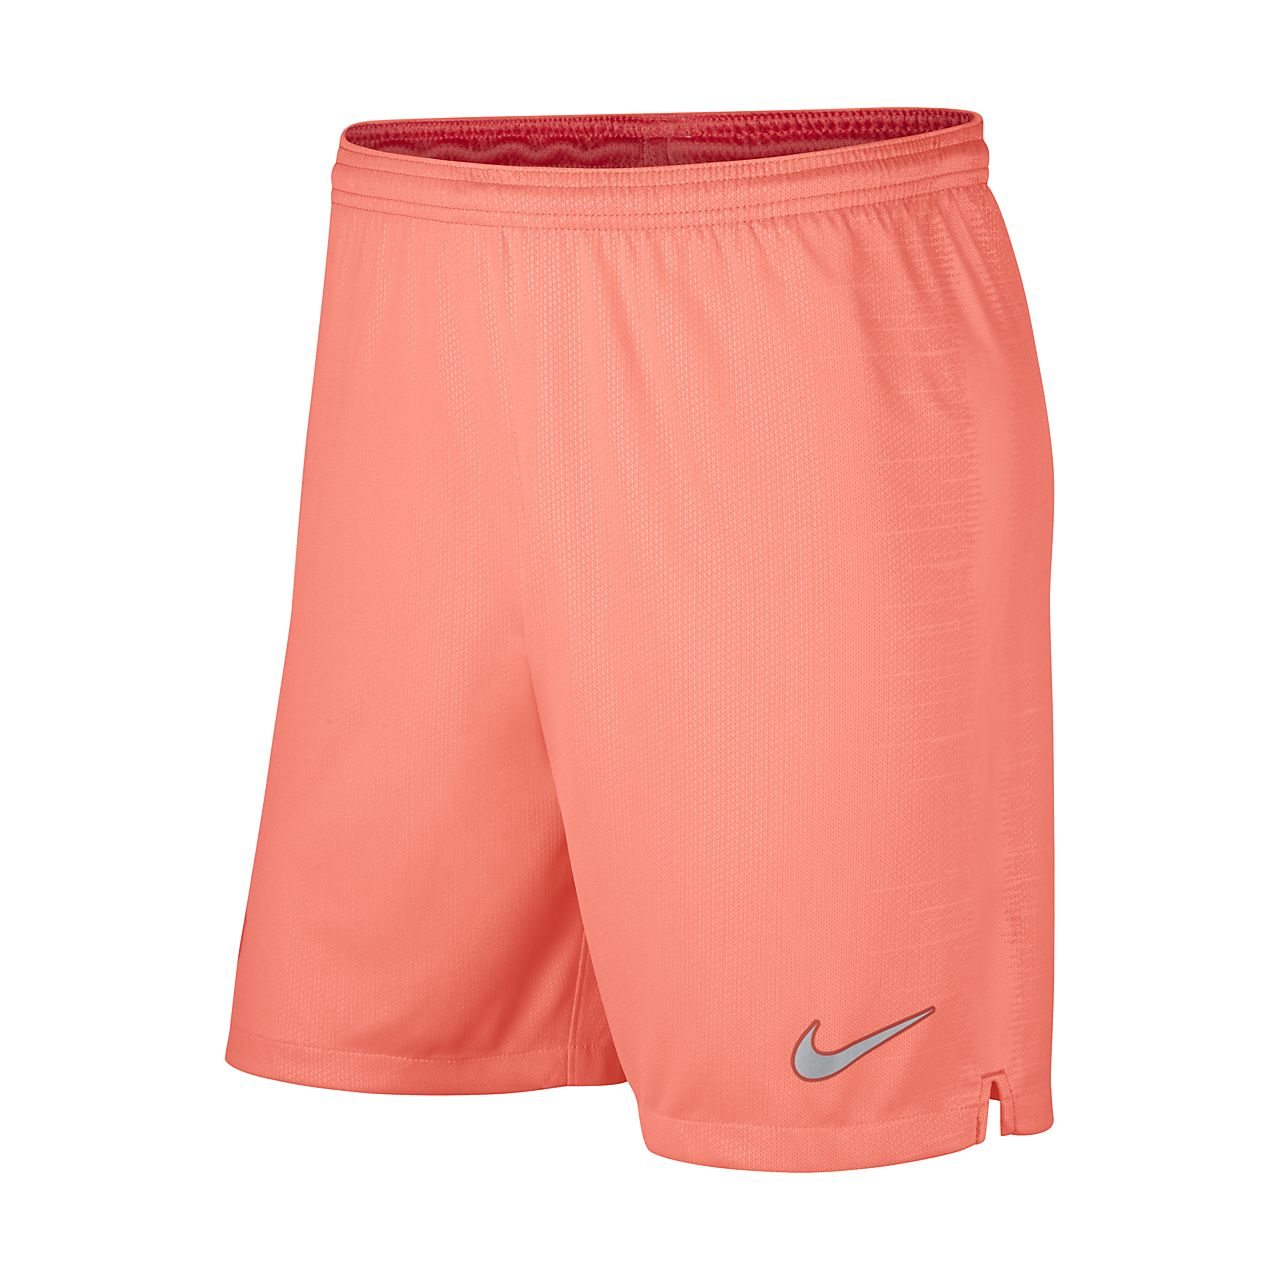 d50dab50f 2018/19 FC Barcelona Stadium Third Men's Football Shorts. Nike.com GB